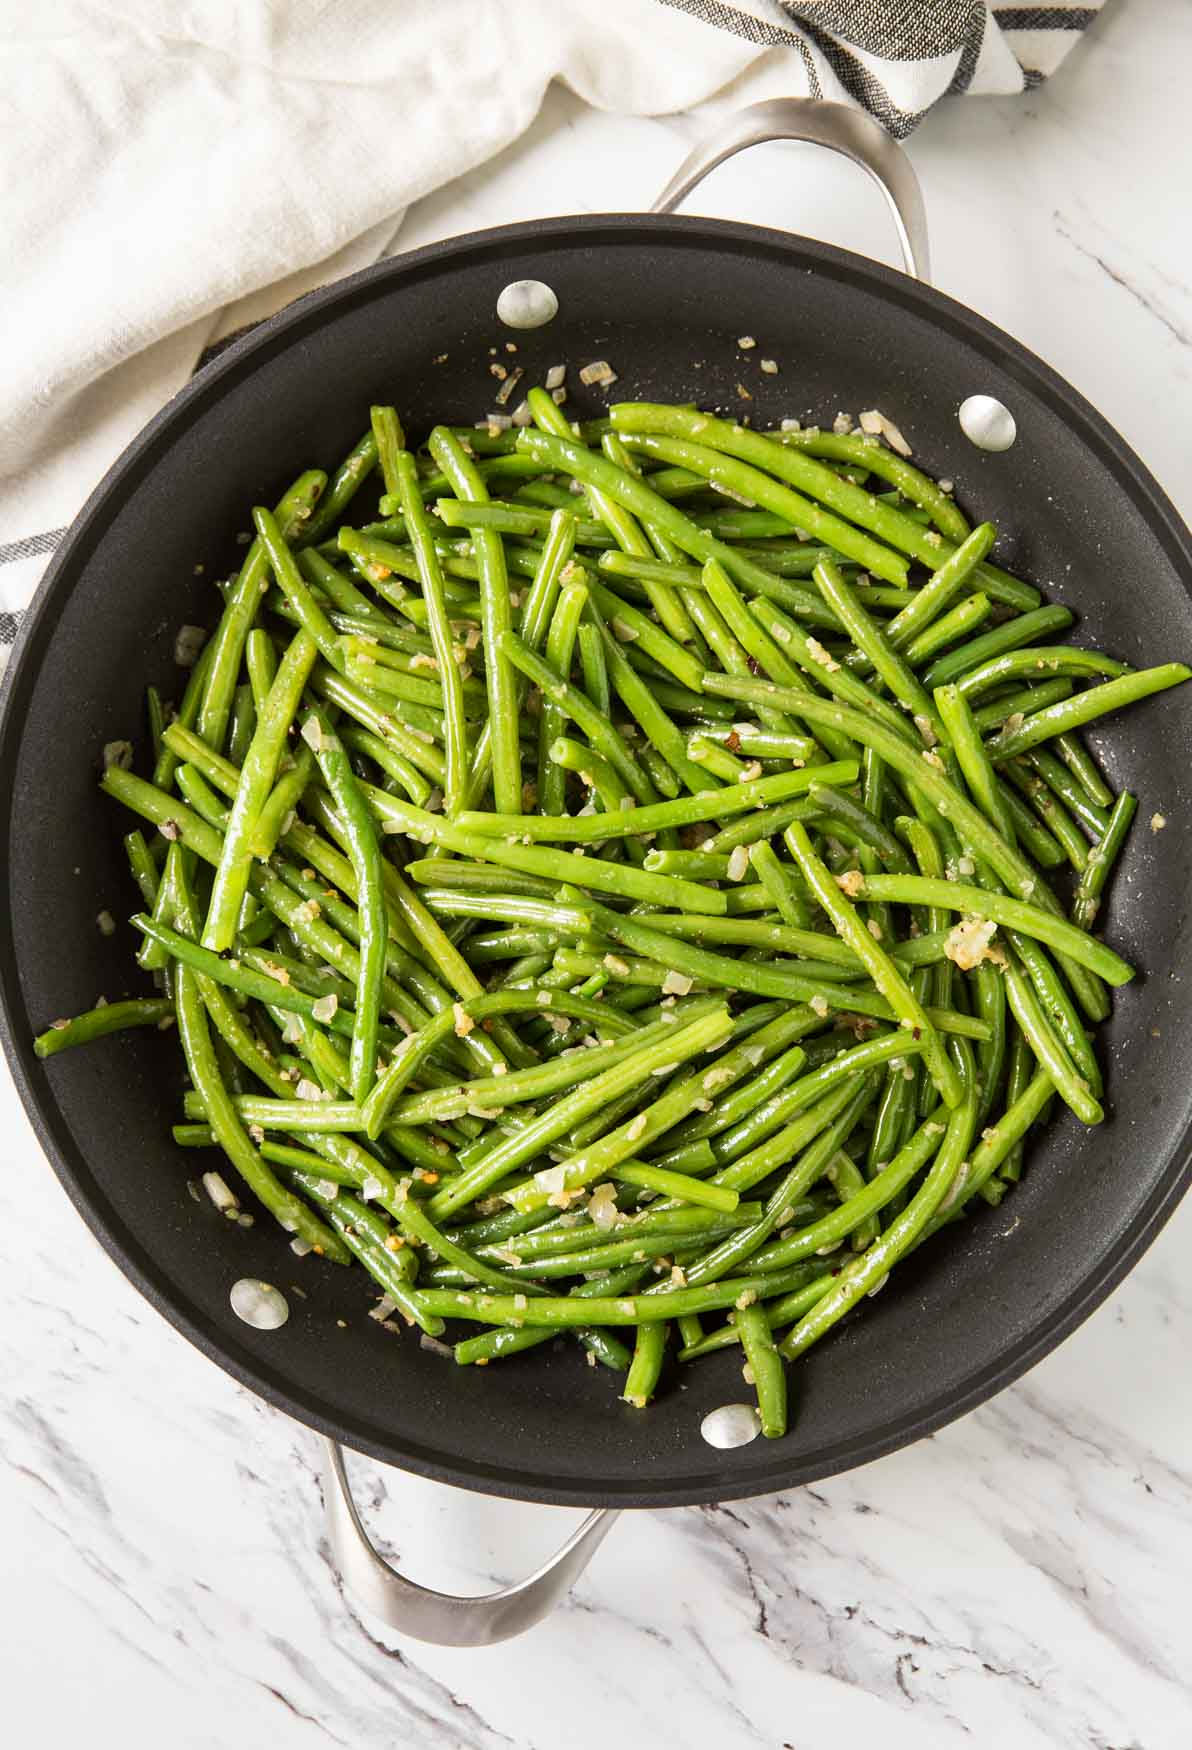 Sauteed garlic green beans in a skillet